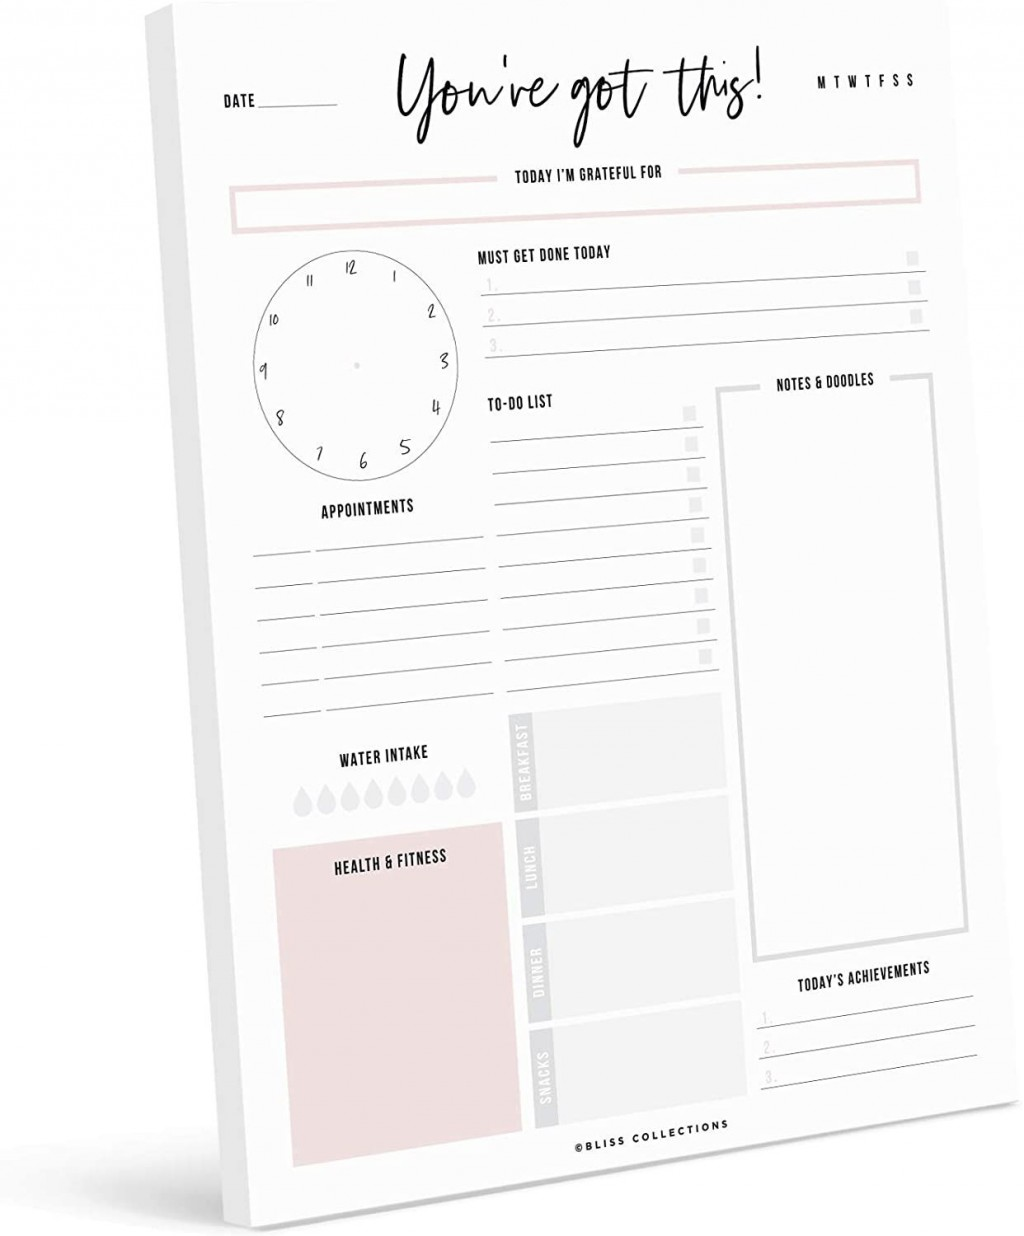 001 Stupendou Real Estate Daily Planner Template Design Large